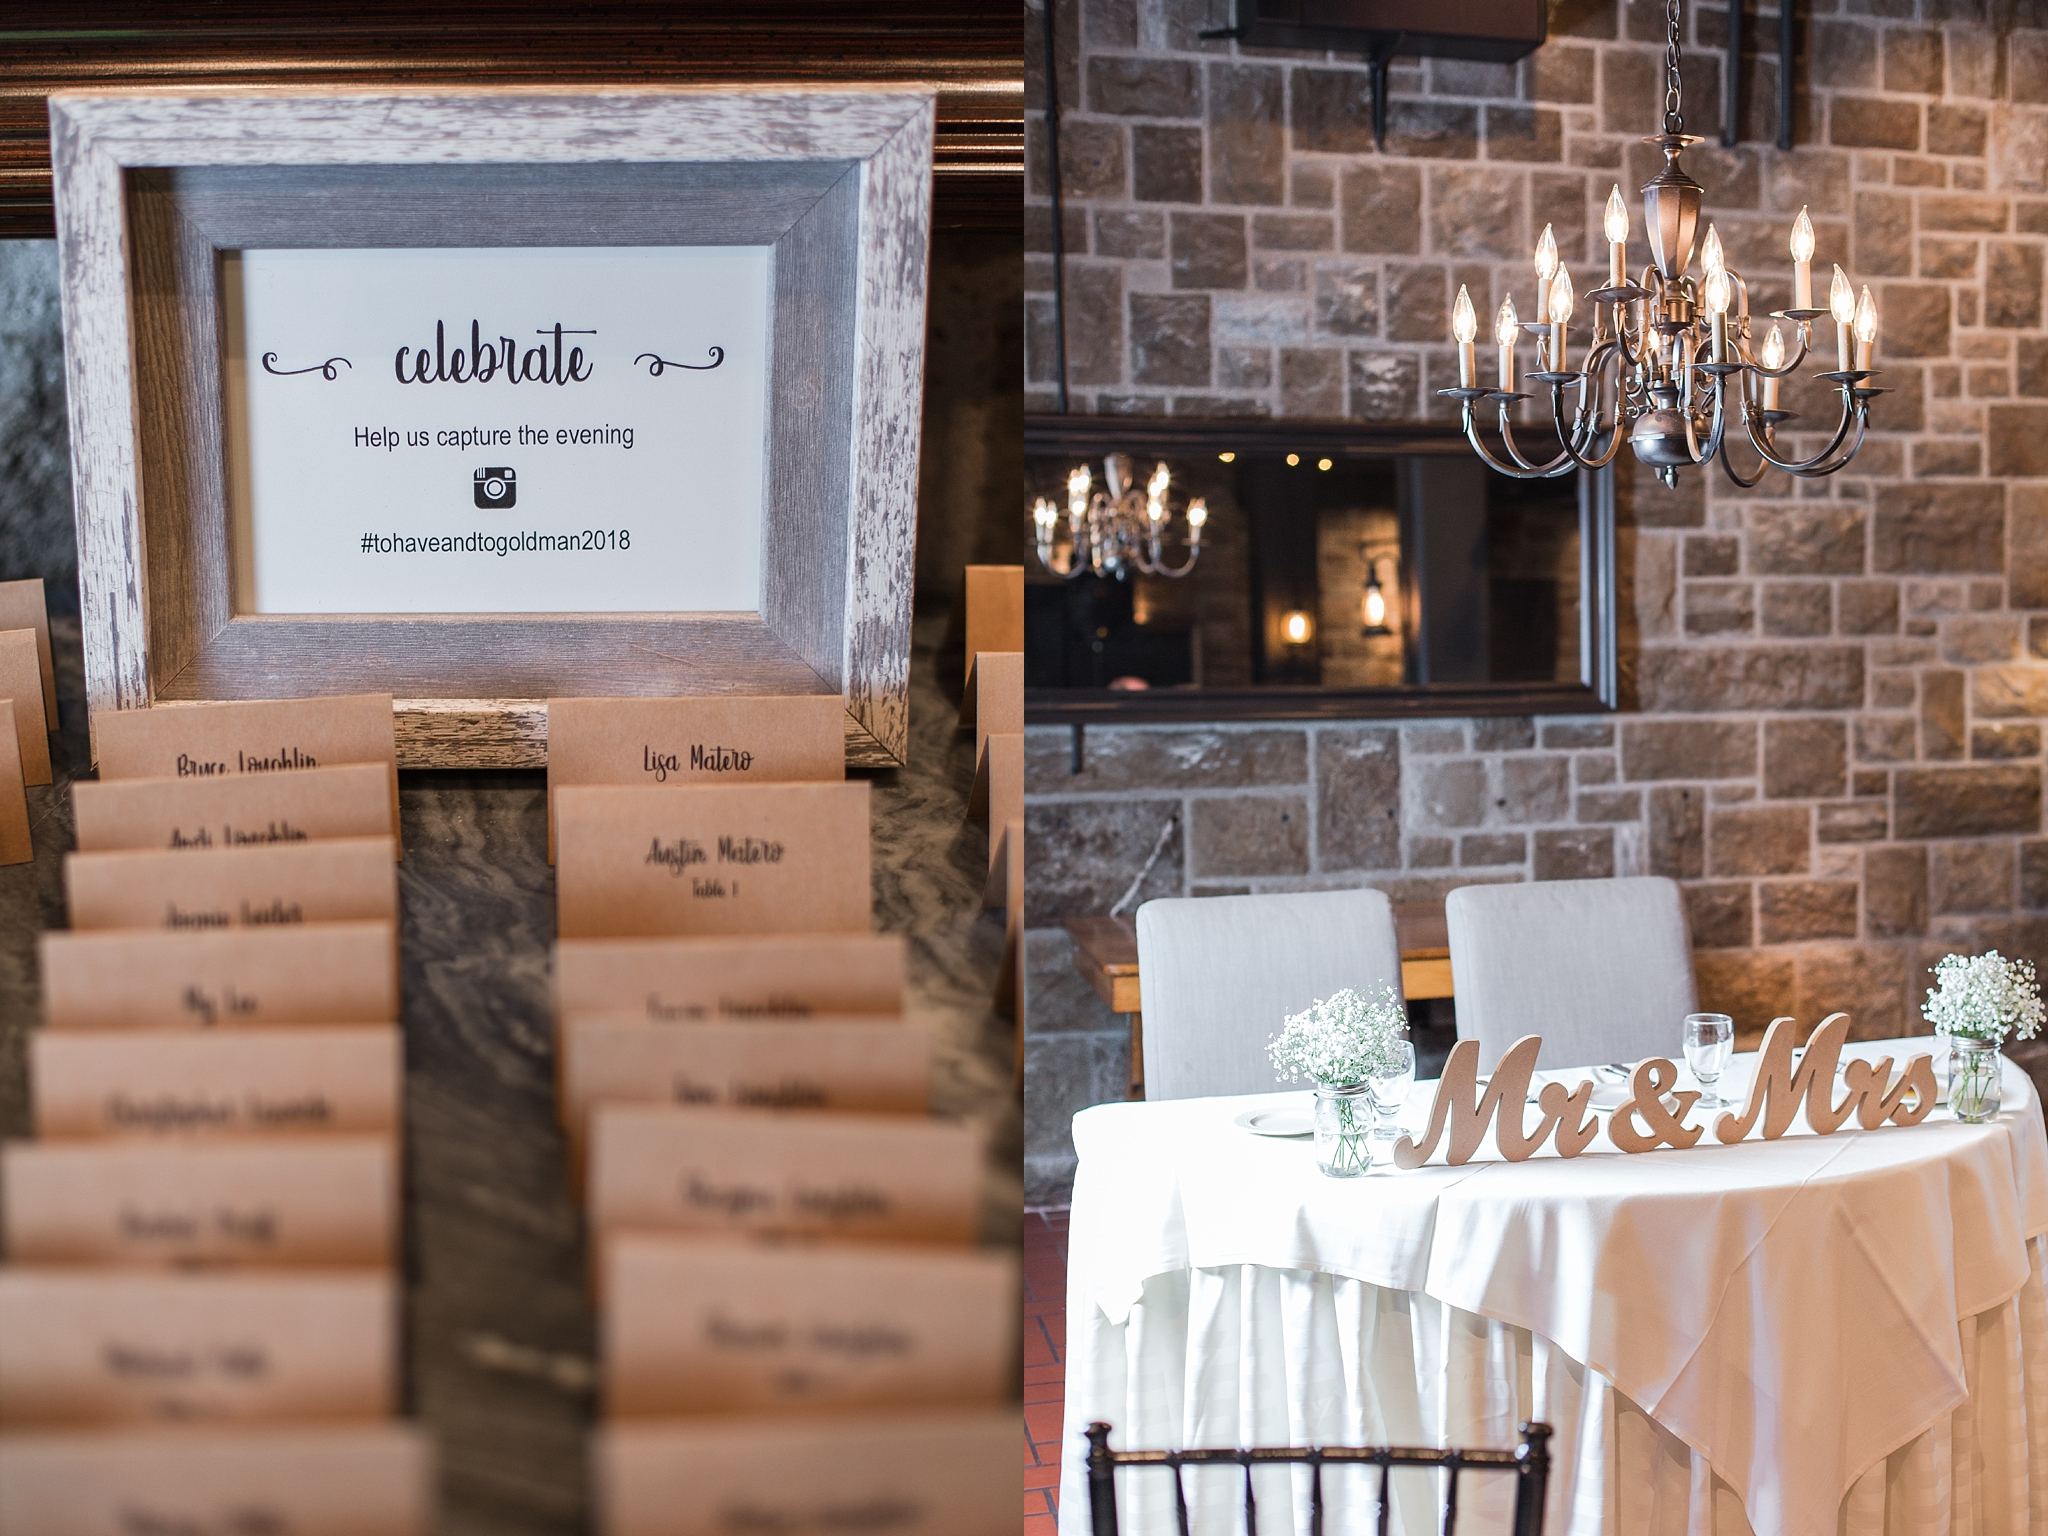 fun-candid-laid-back-wedding-photos-at-wellers-carriage-house-in-saline-michigan-and-at-the-eagle-crest-golf-resort-by-courtney-carolyn-photography_0088.jpg